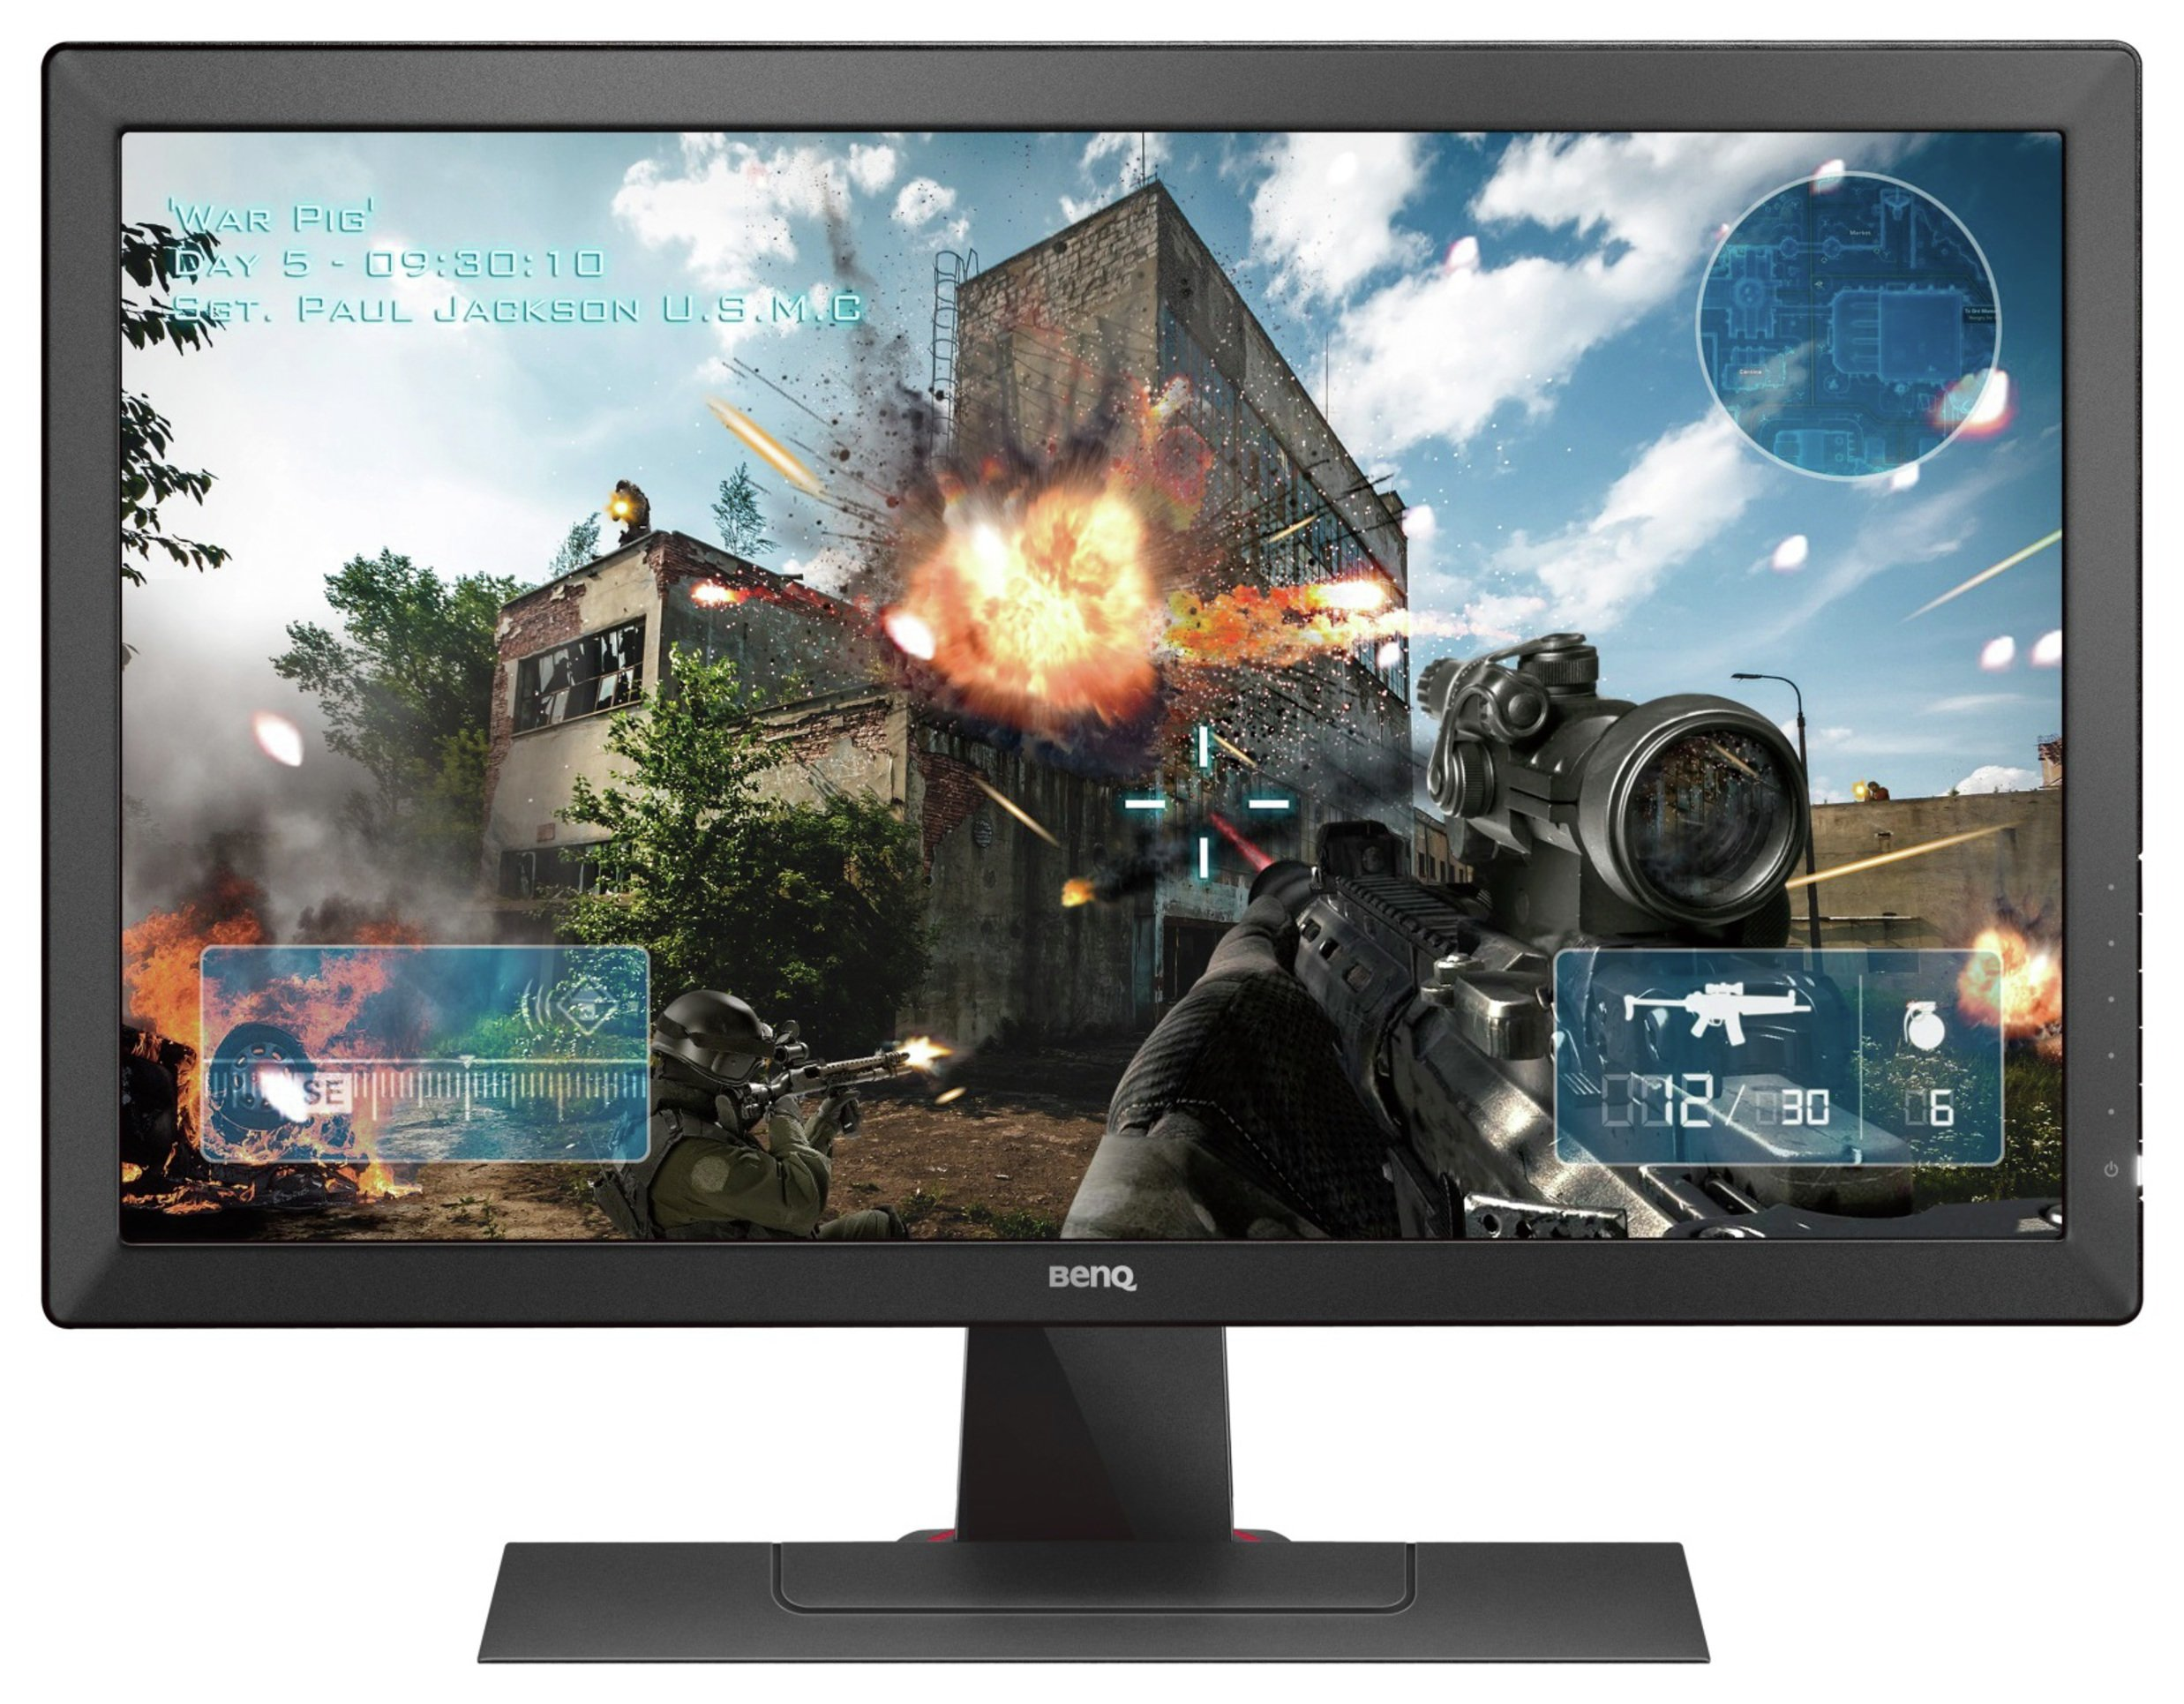 Image of BenQ Zowie RL2455 24 Inch Gaming PC Monitor.